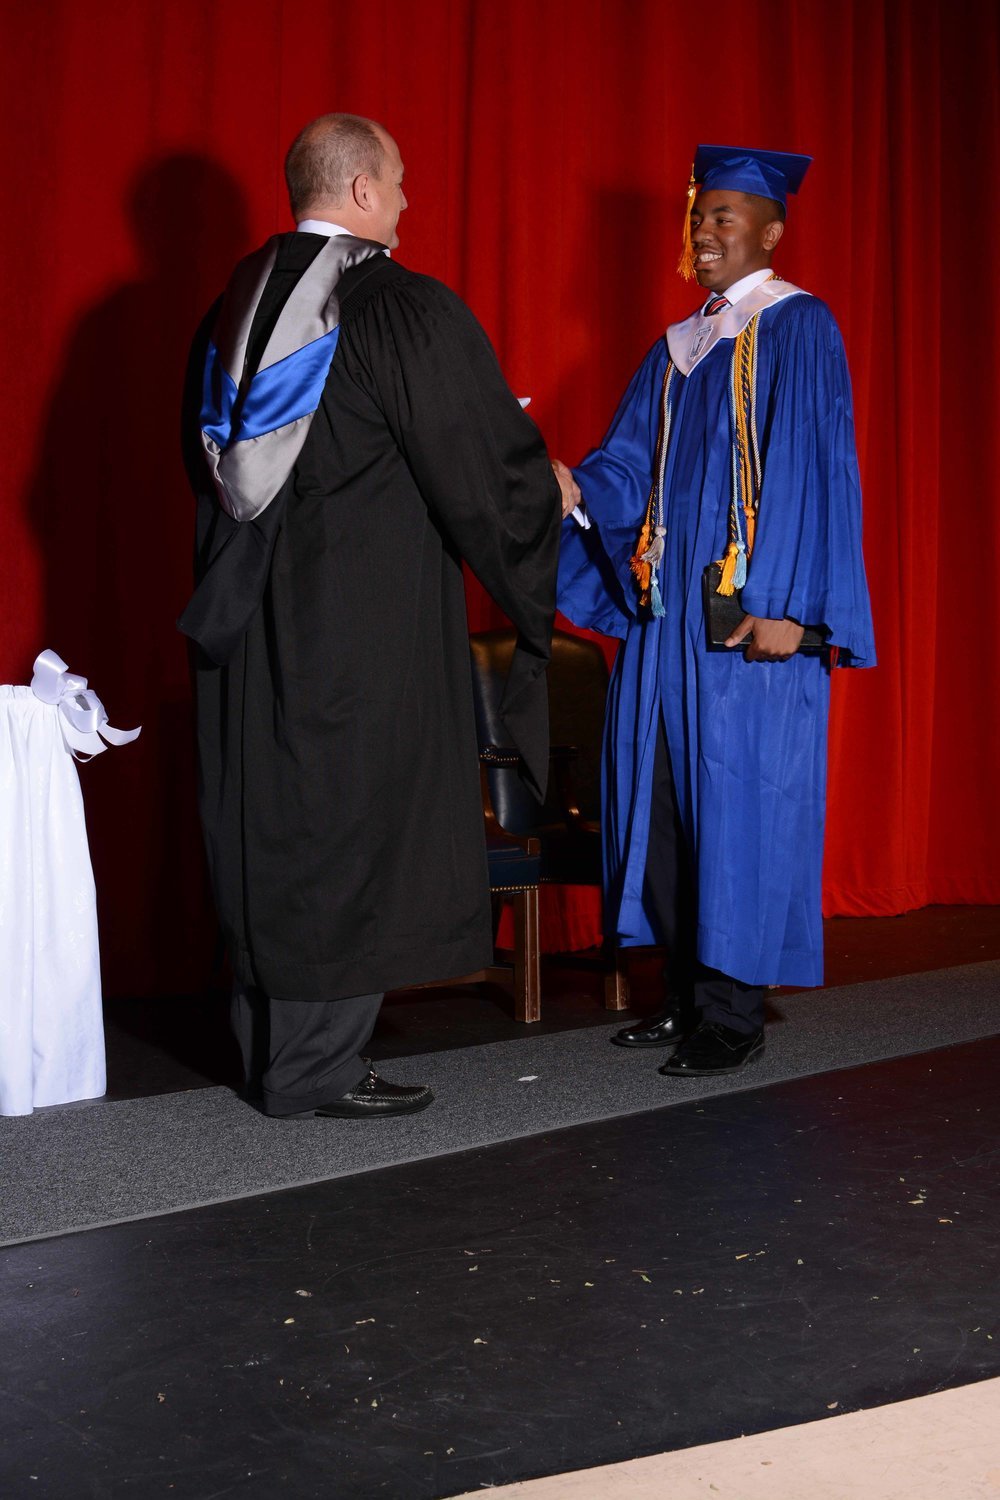 May15 HardingGraduation04.jpg